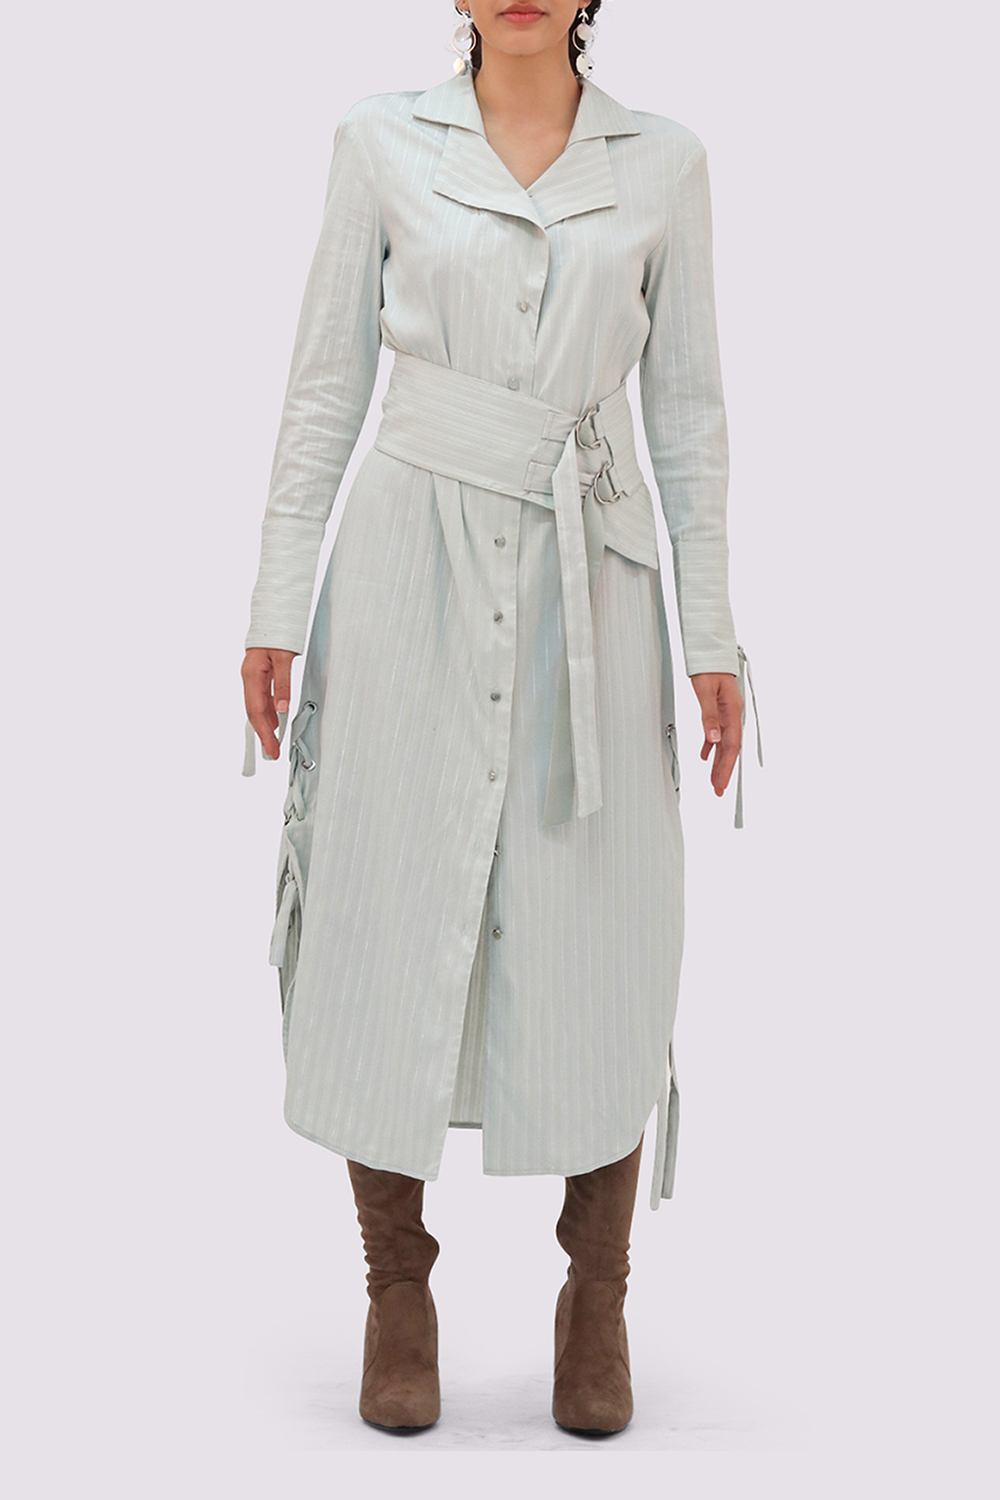 Smart and Joy Ice Mint Shirtdress